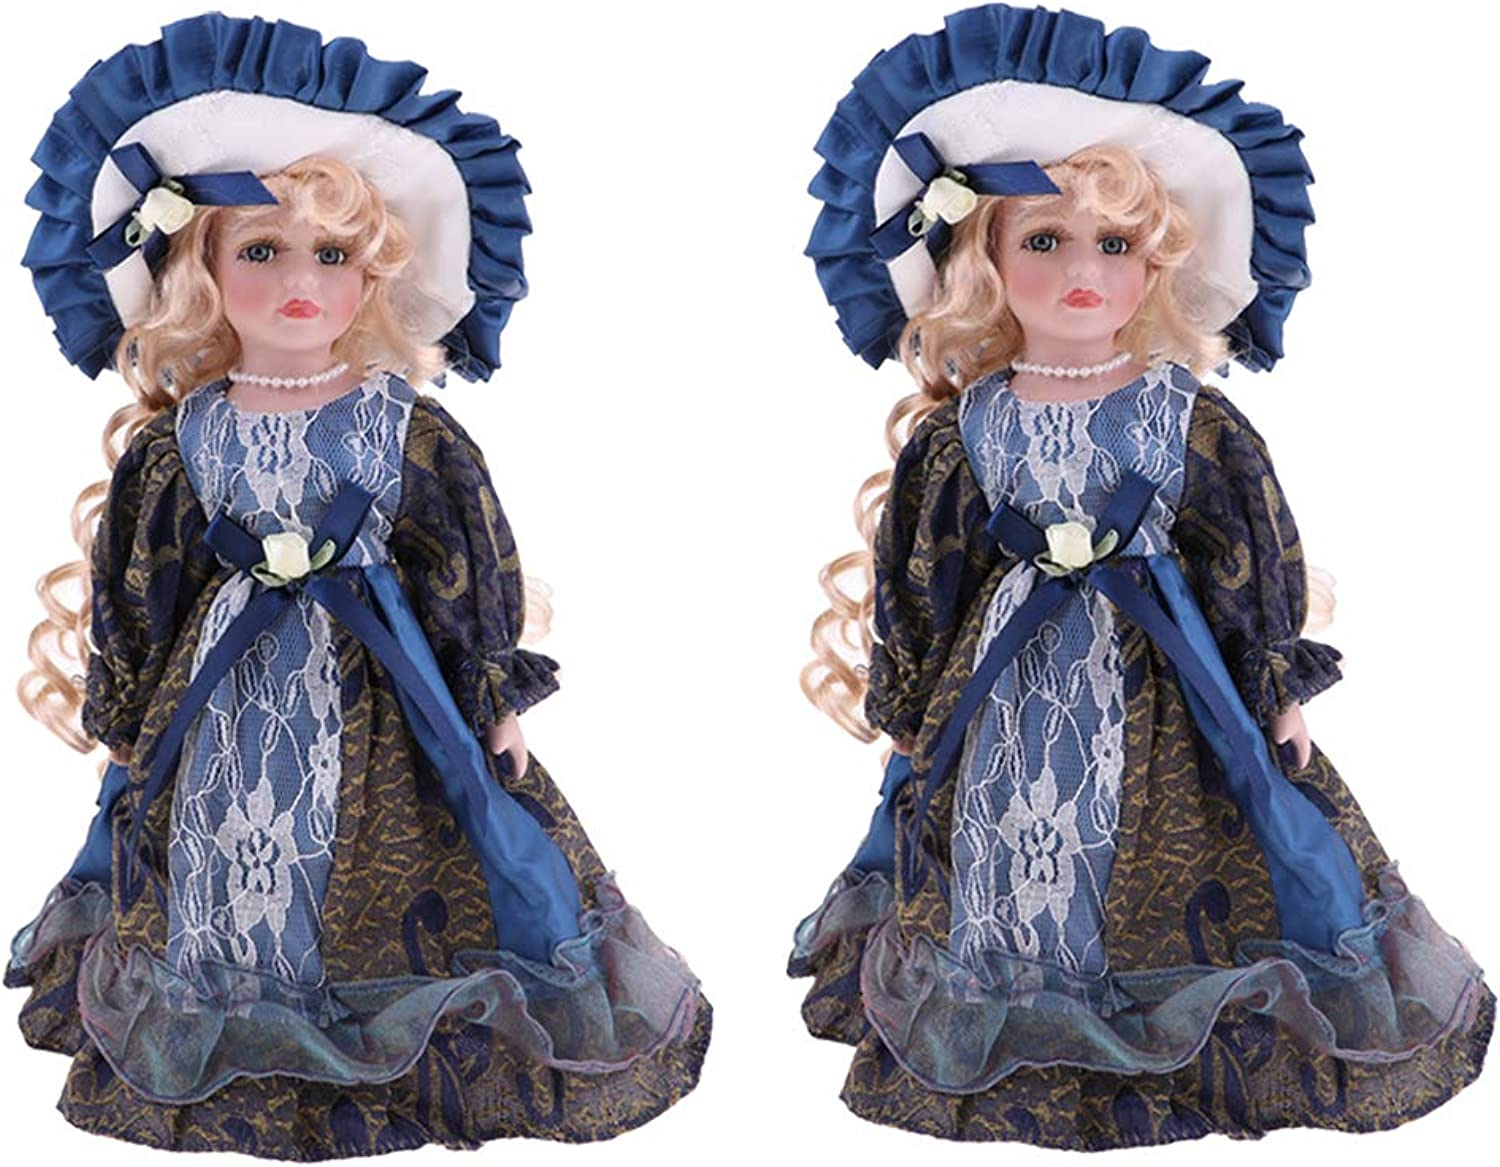 Fityle Elegant Victorian Porcelain Doll with Wooden Stand Russia Girl Action Figures Crafts for Dollhouse Life Scenes Decor 2pcs